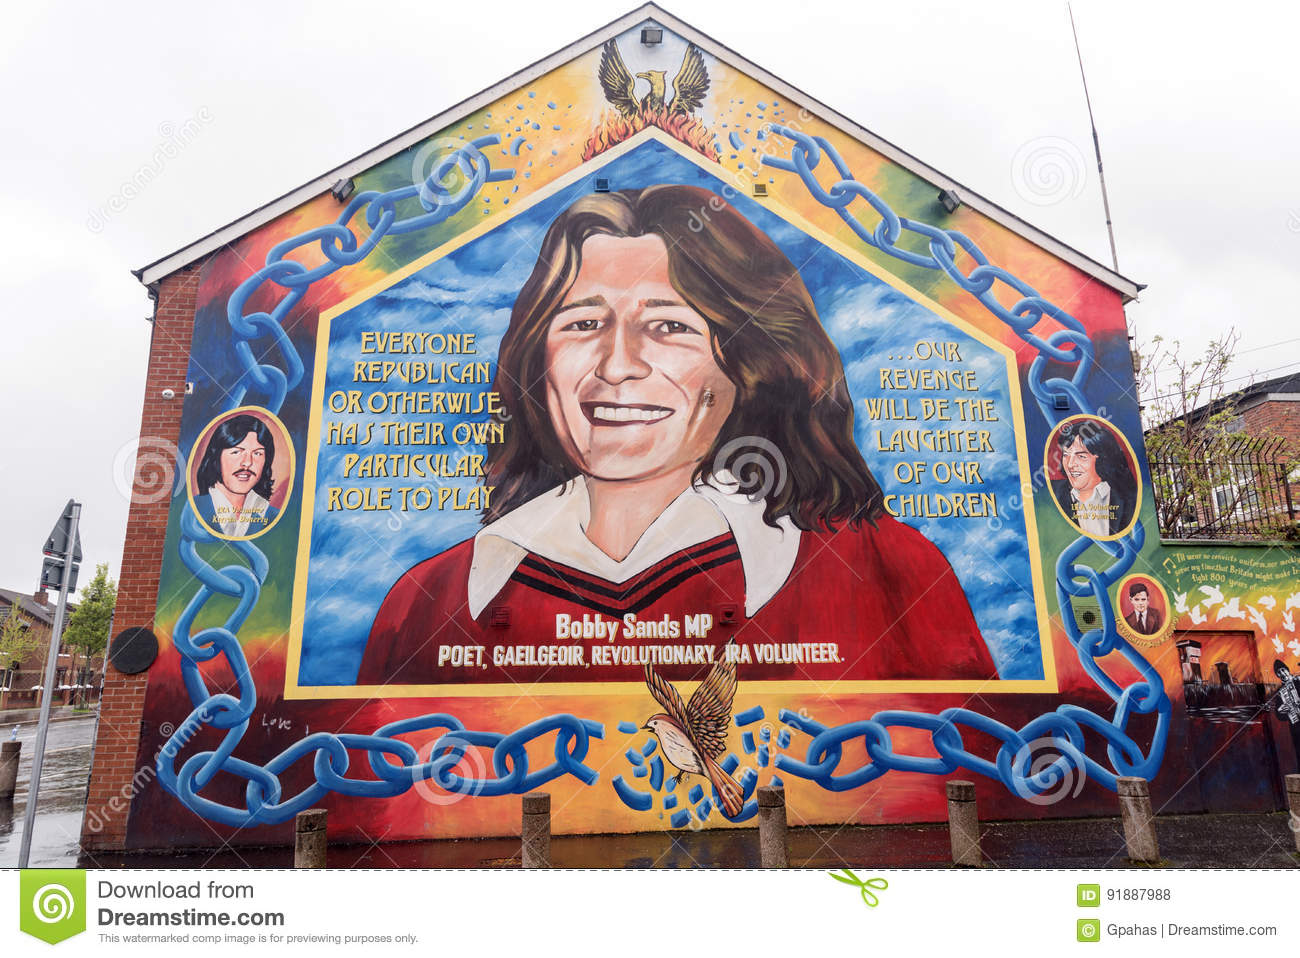 Bobby sands mural in belfast northern ireland editorial for Bobby sands mural